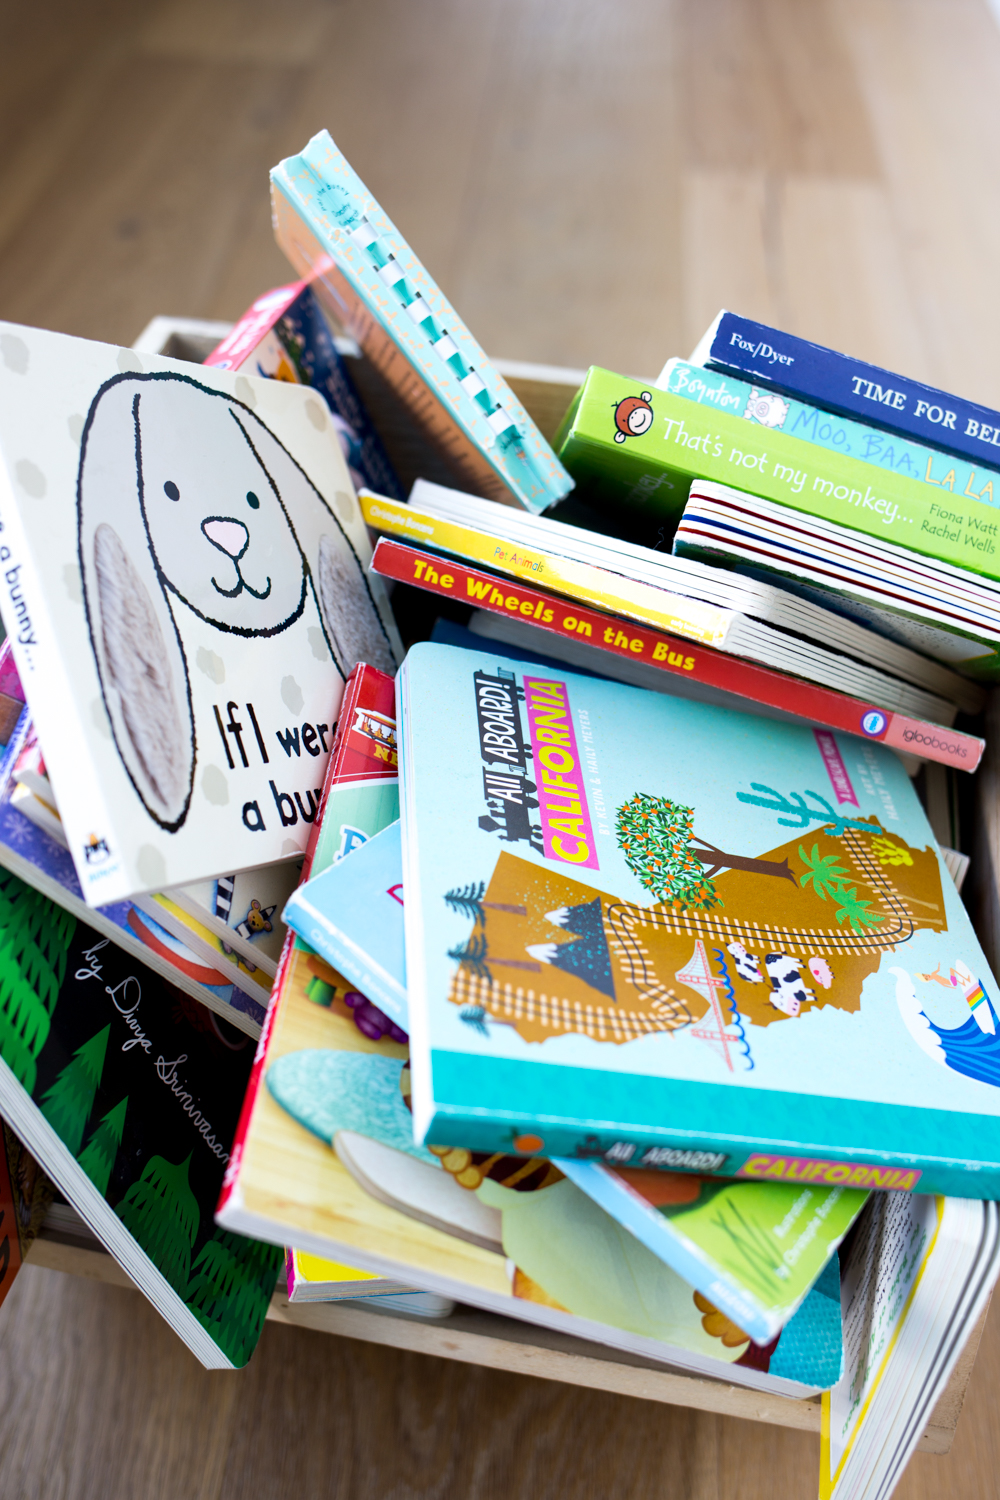 Pile of children's books in a wooden bin